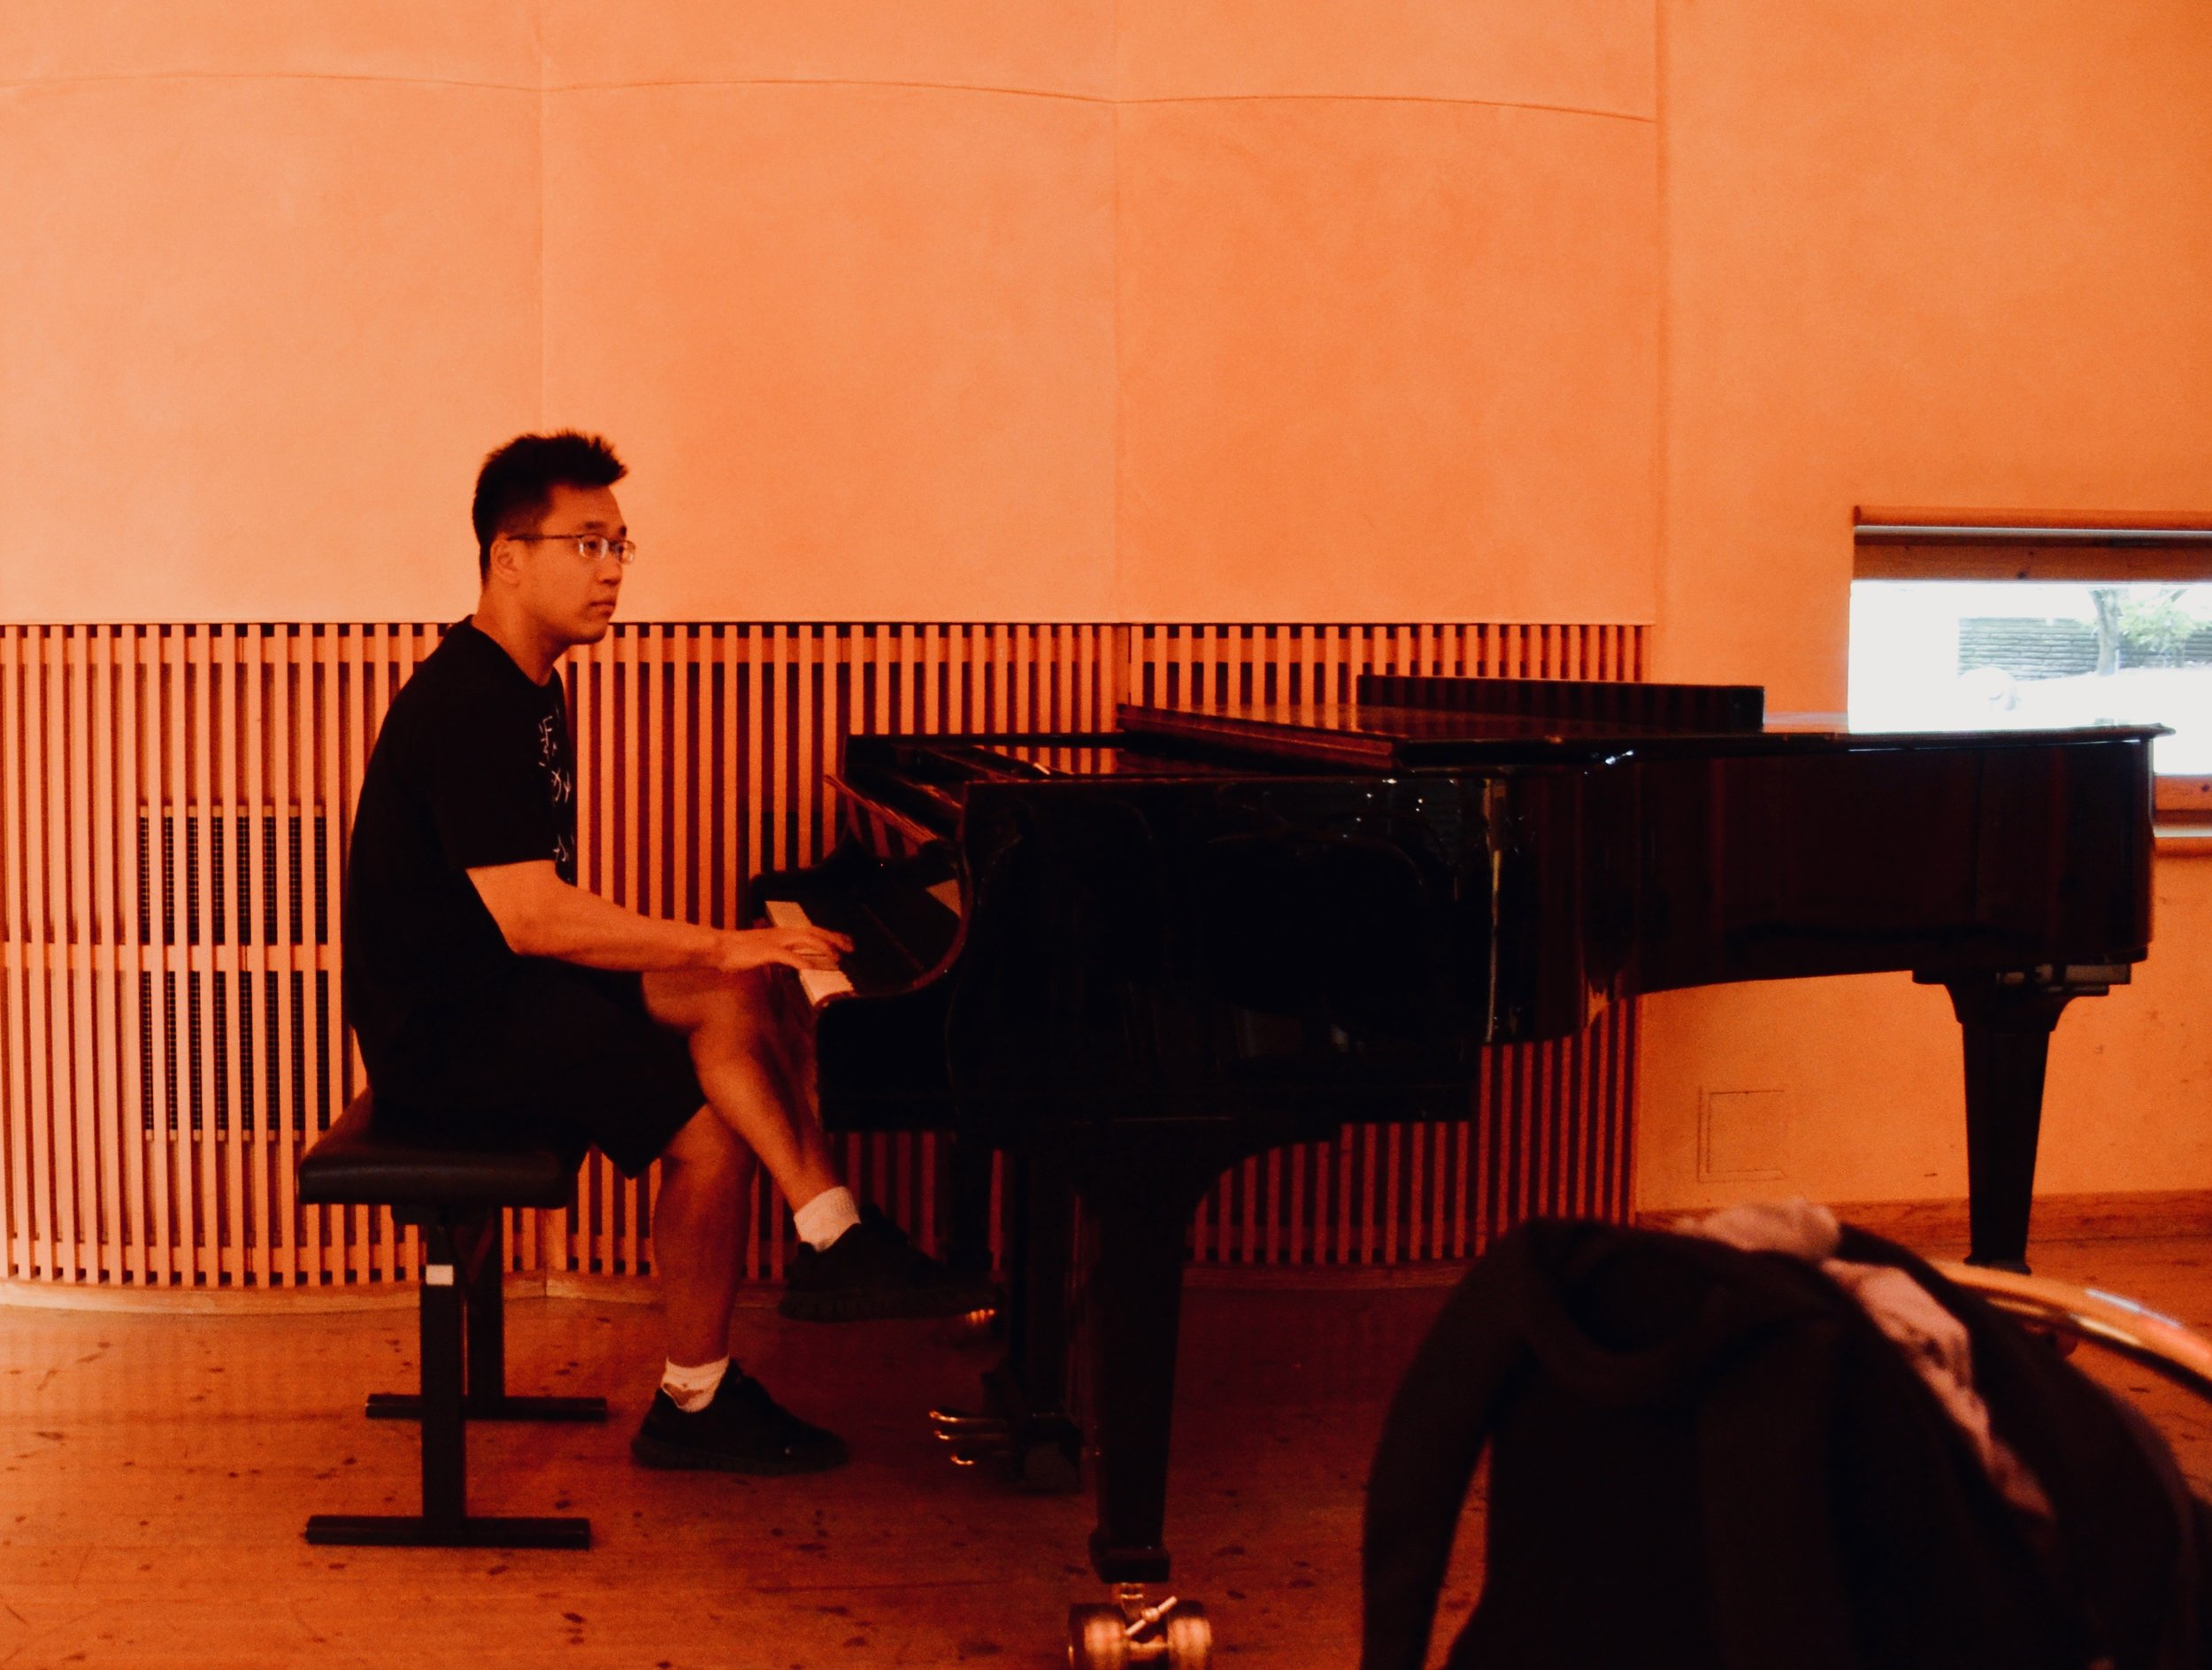 Adrian Cho plays the Steinway piano in Artisten, as part of improvisations with organ and choir (members of Boston Organ Studio).